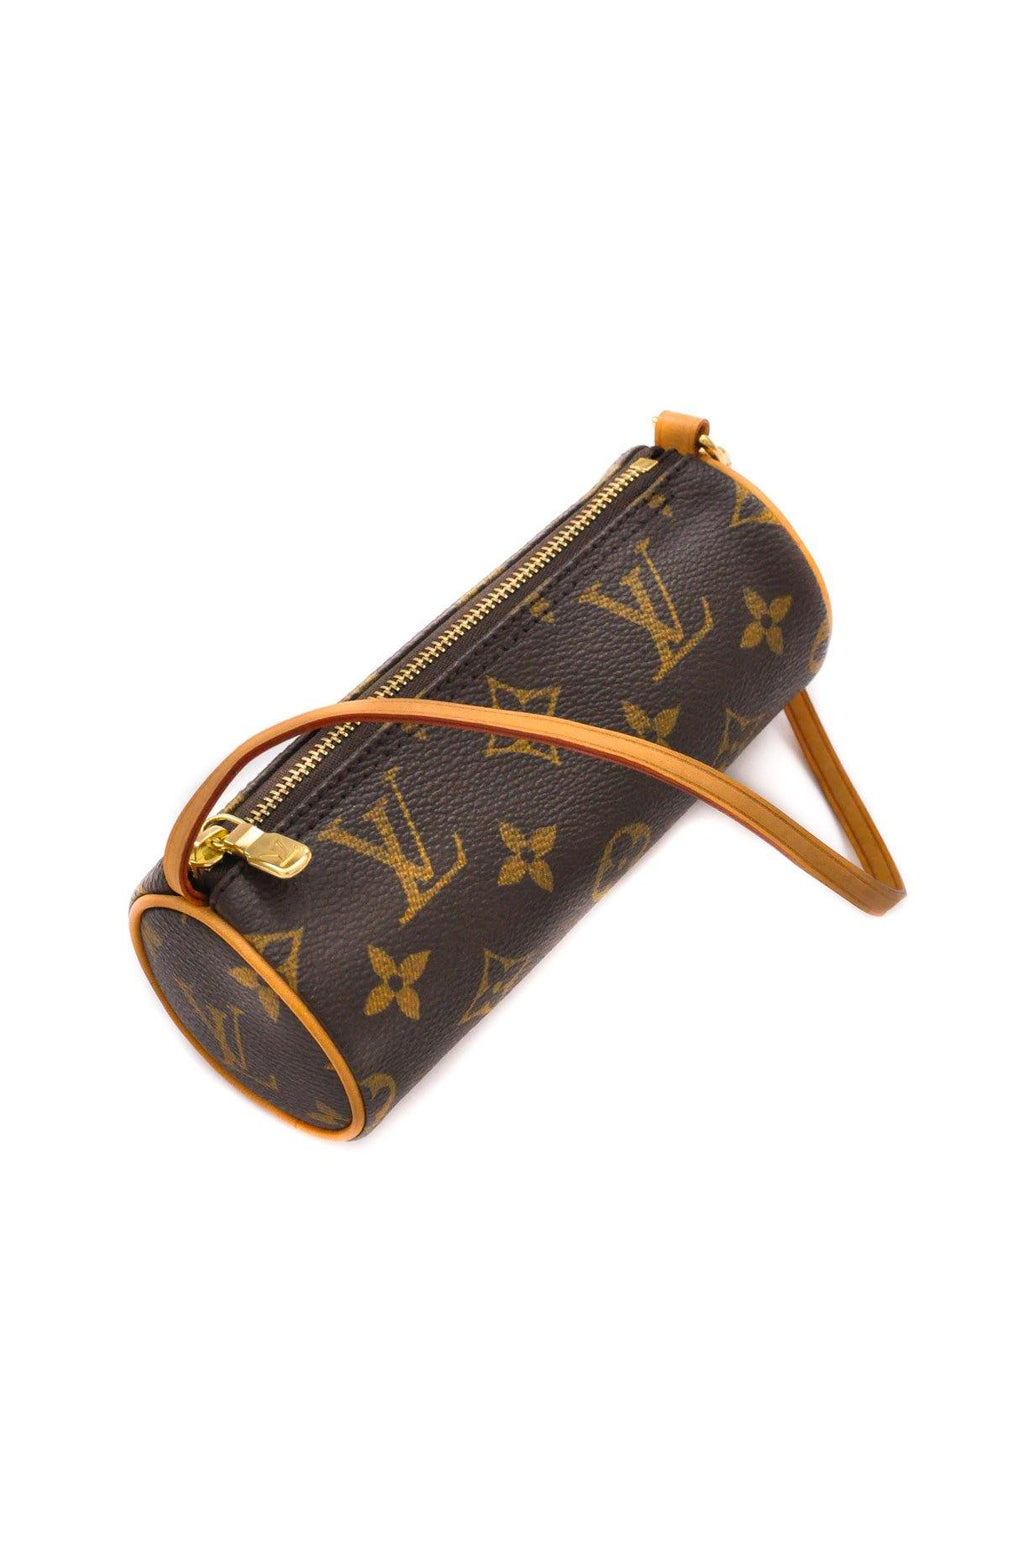 Louis Vuitton Mini Papillon Bag